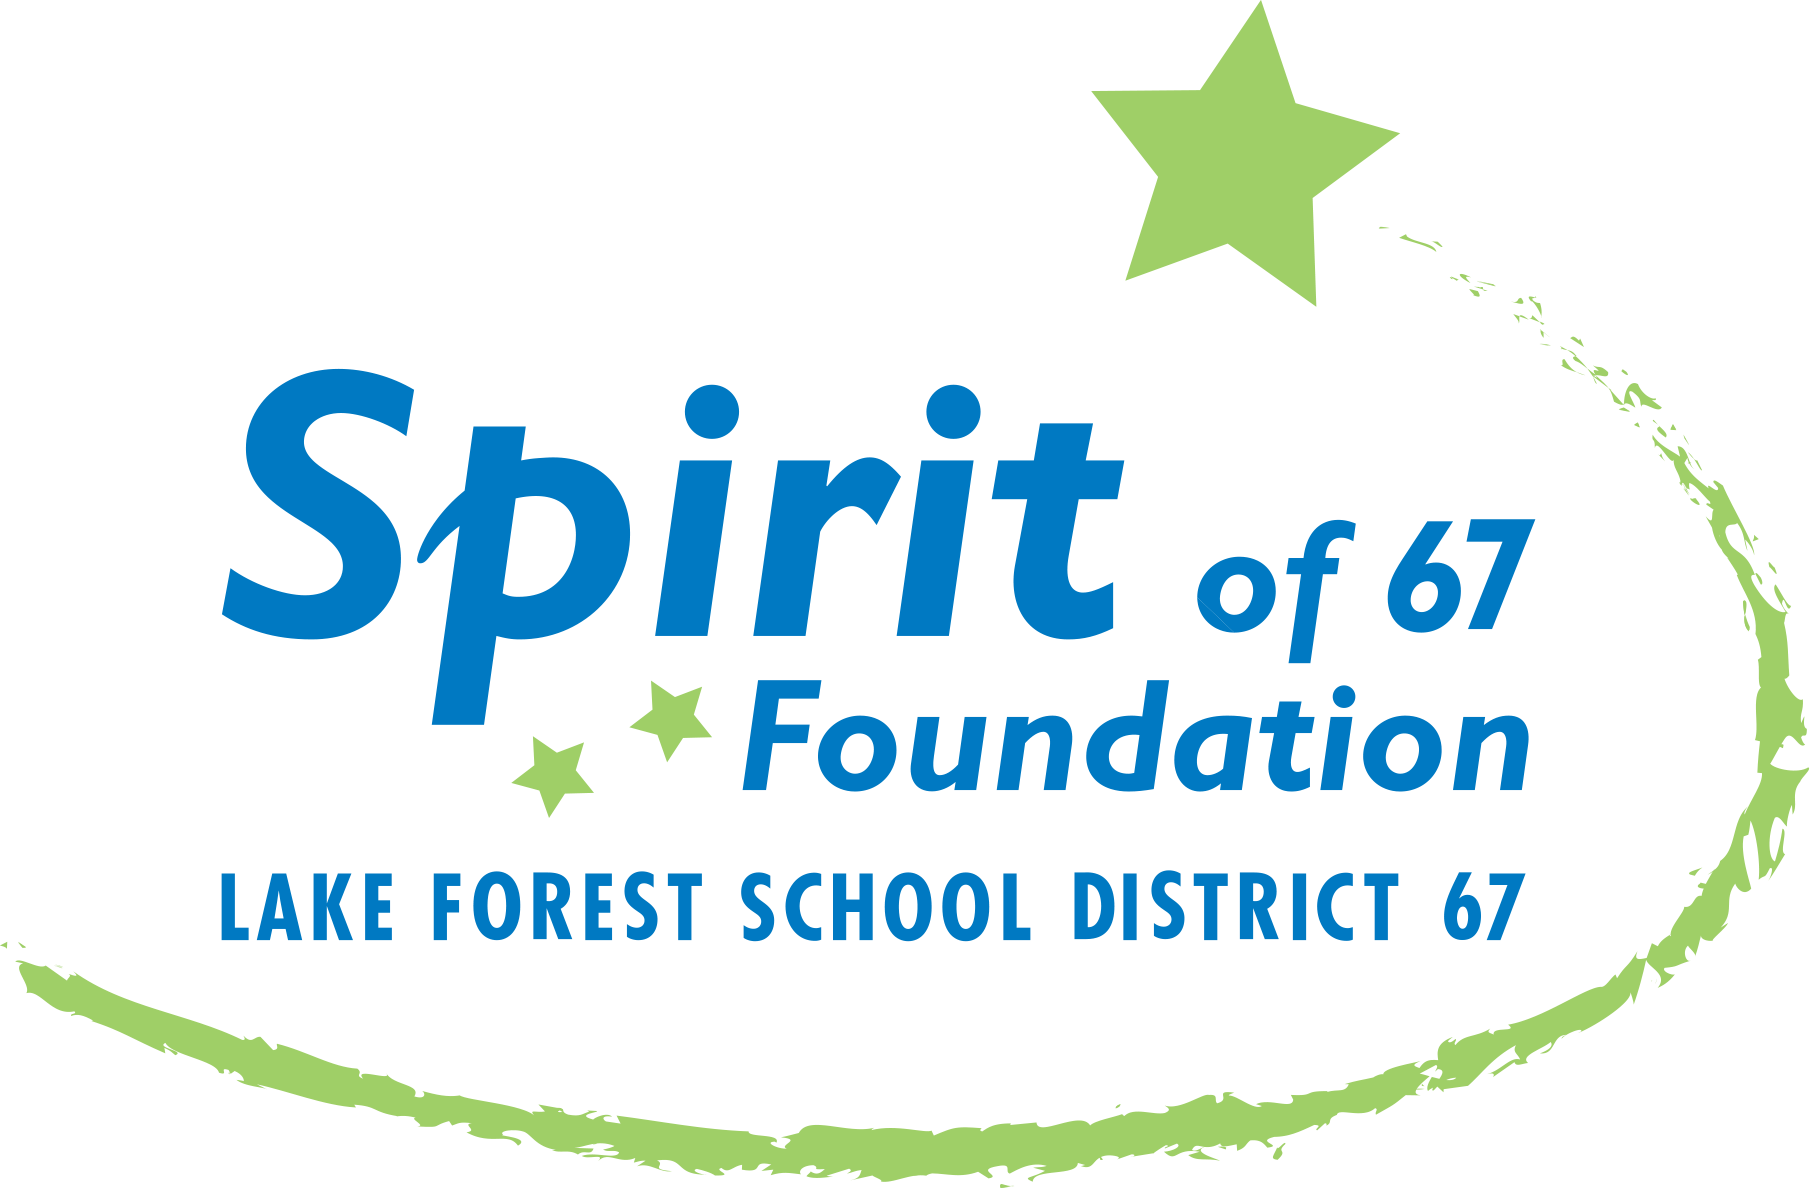 Logo for the Spirit of 67 Foundation